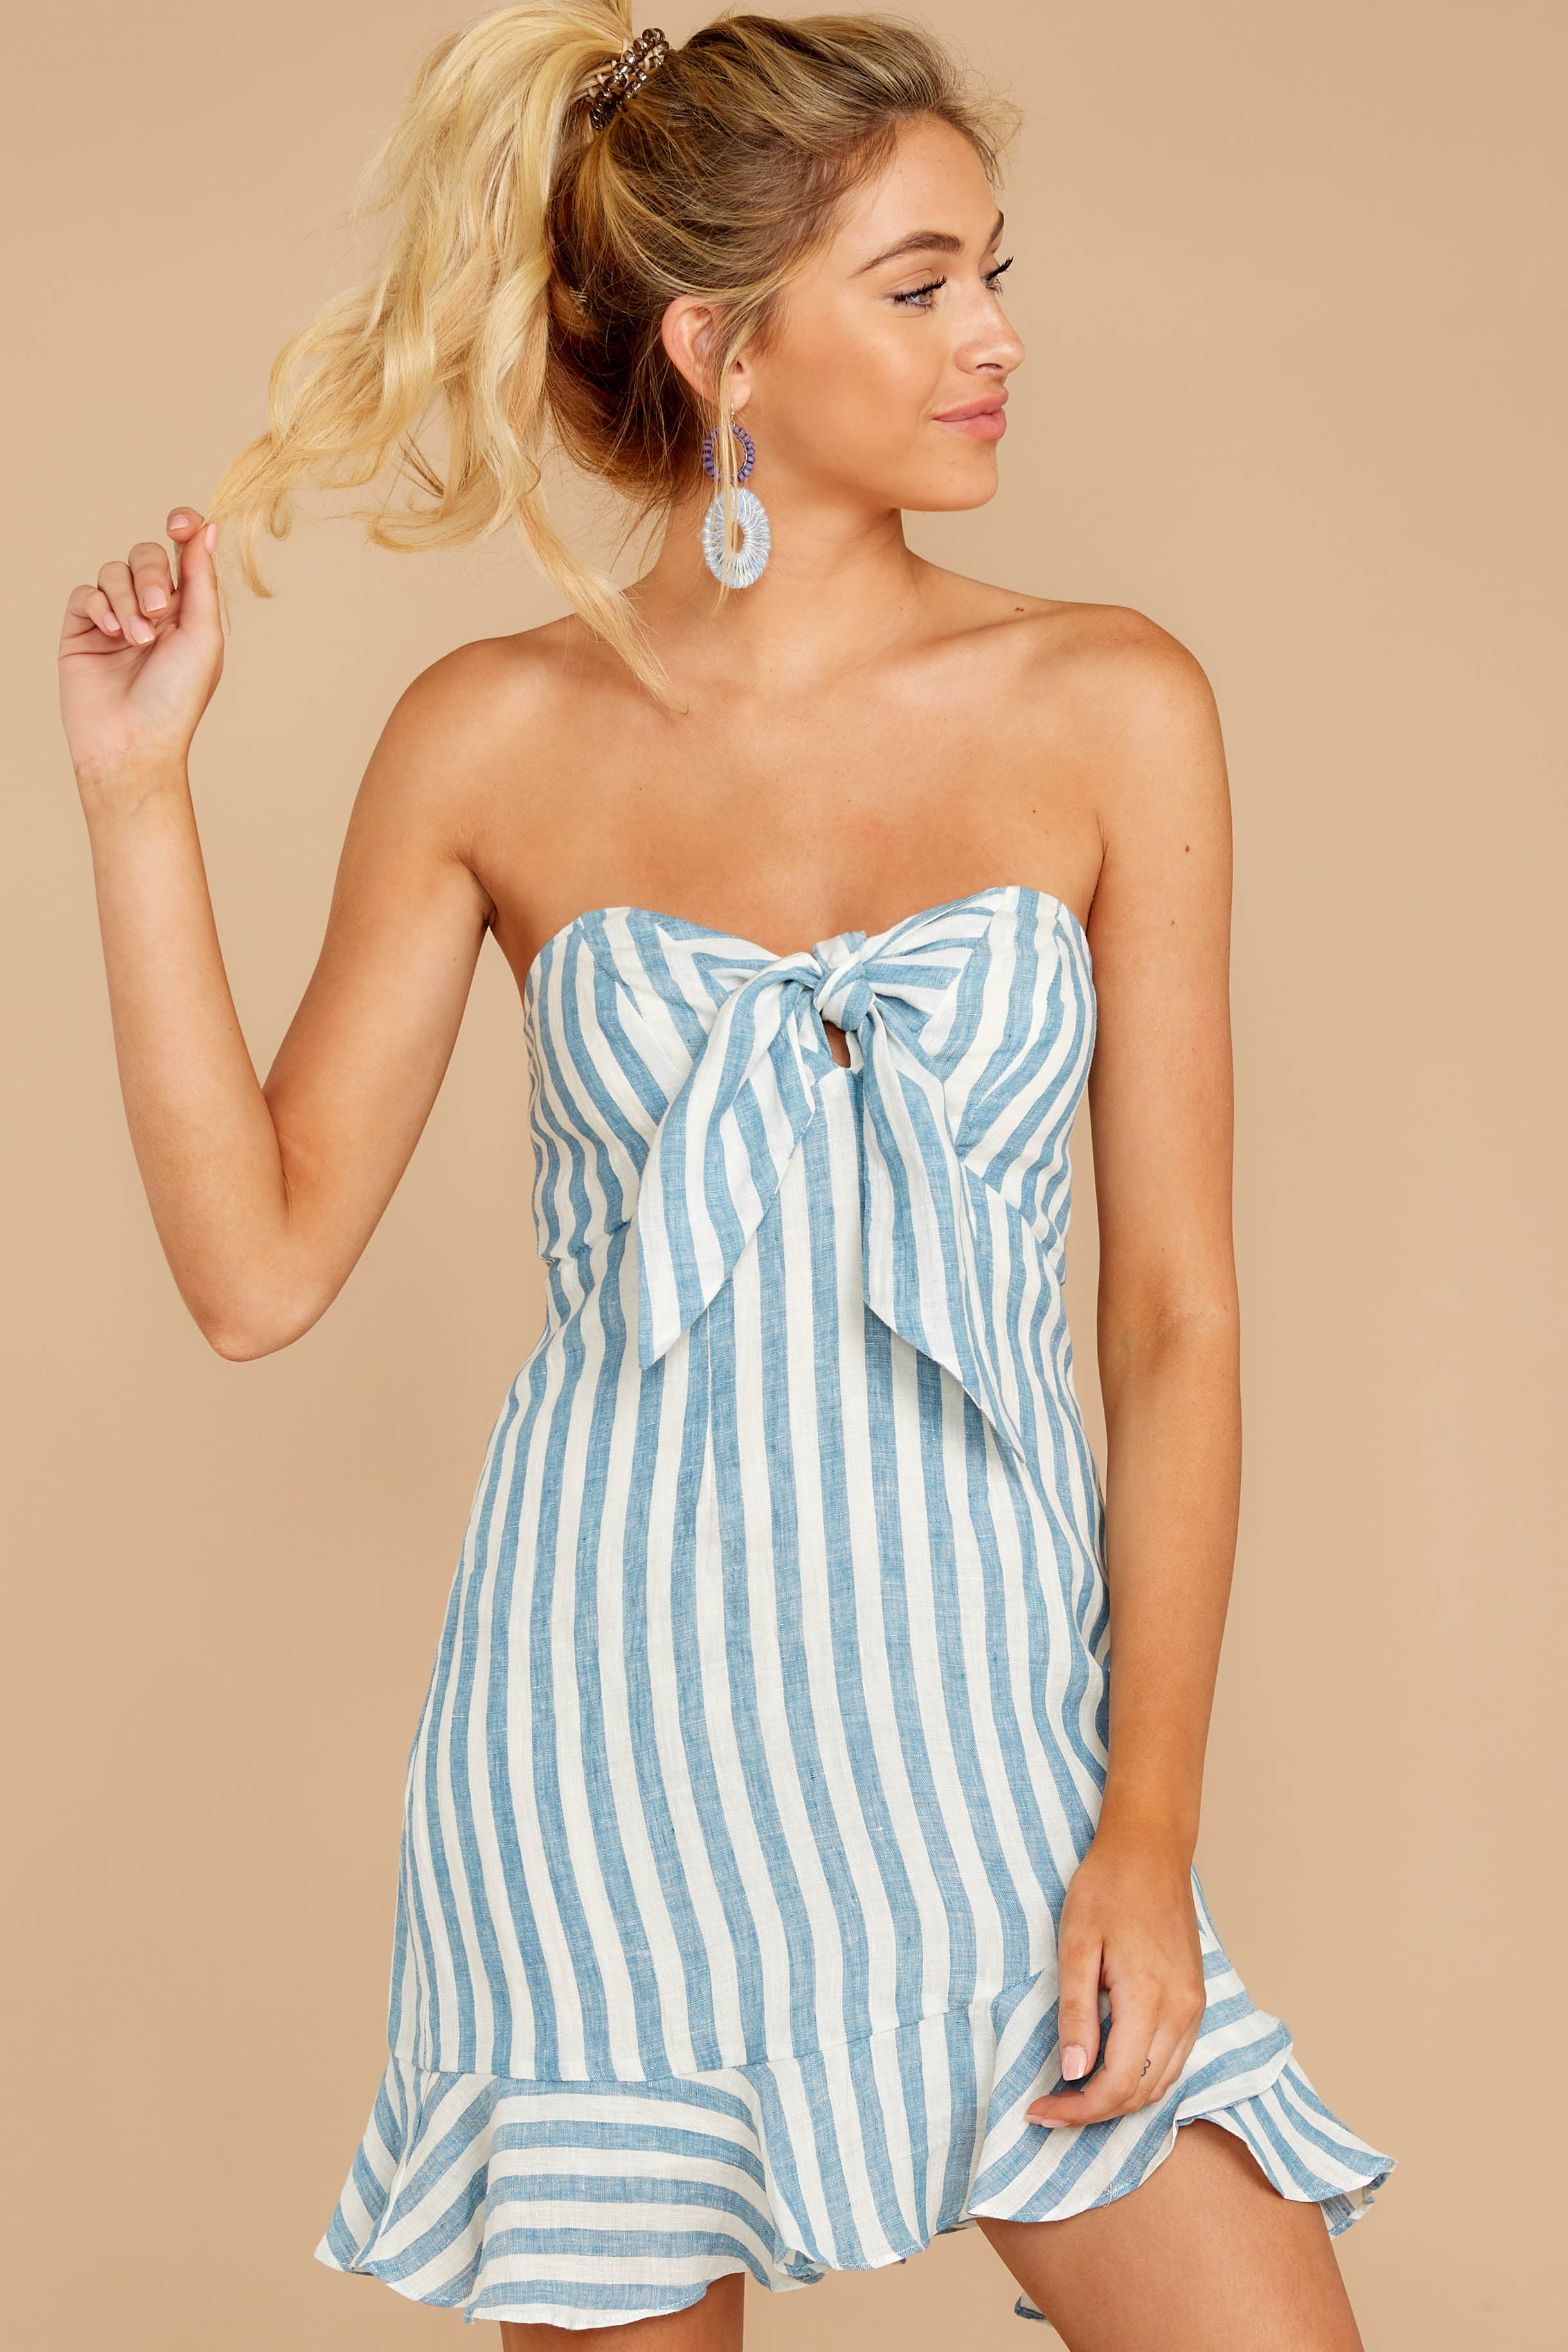 1 Ahoy There Light Blue Stripe Dress at reddress.com